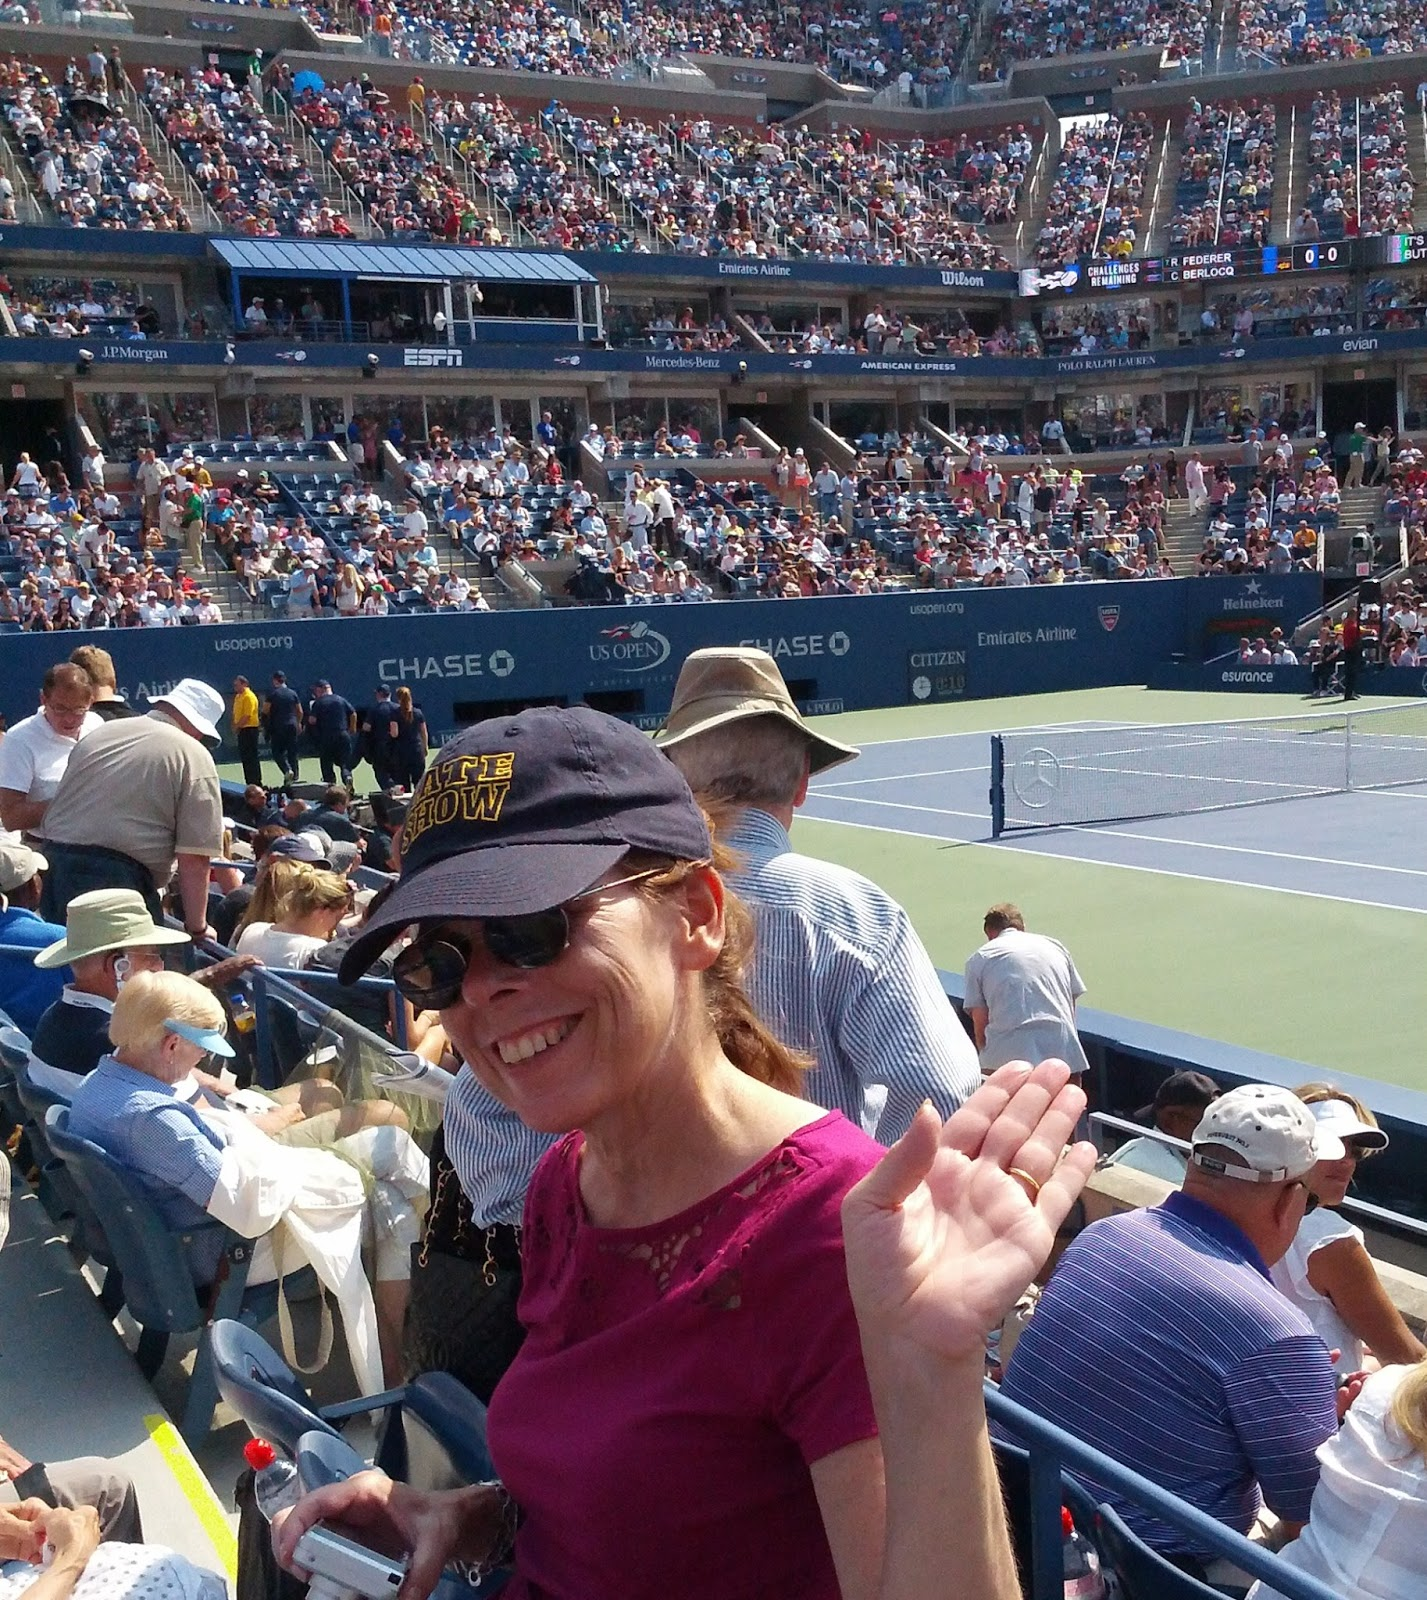 courtside at the US Open Tennis